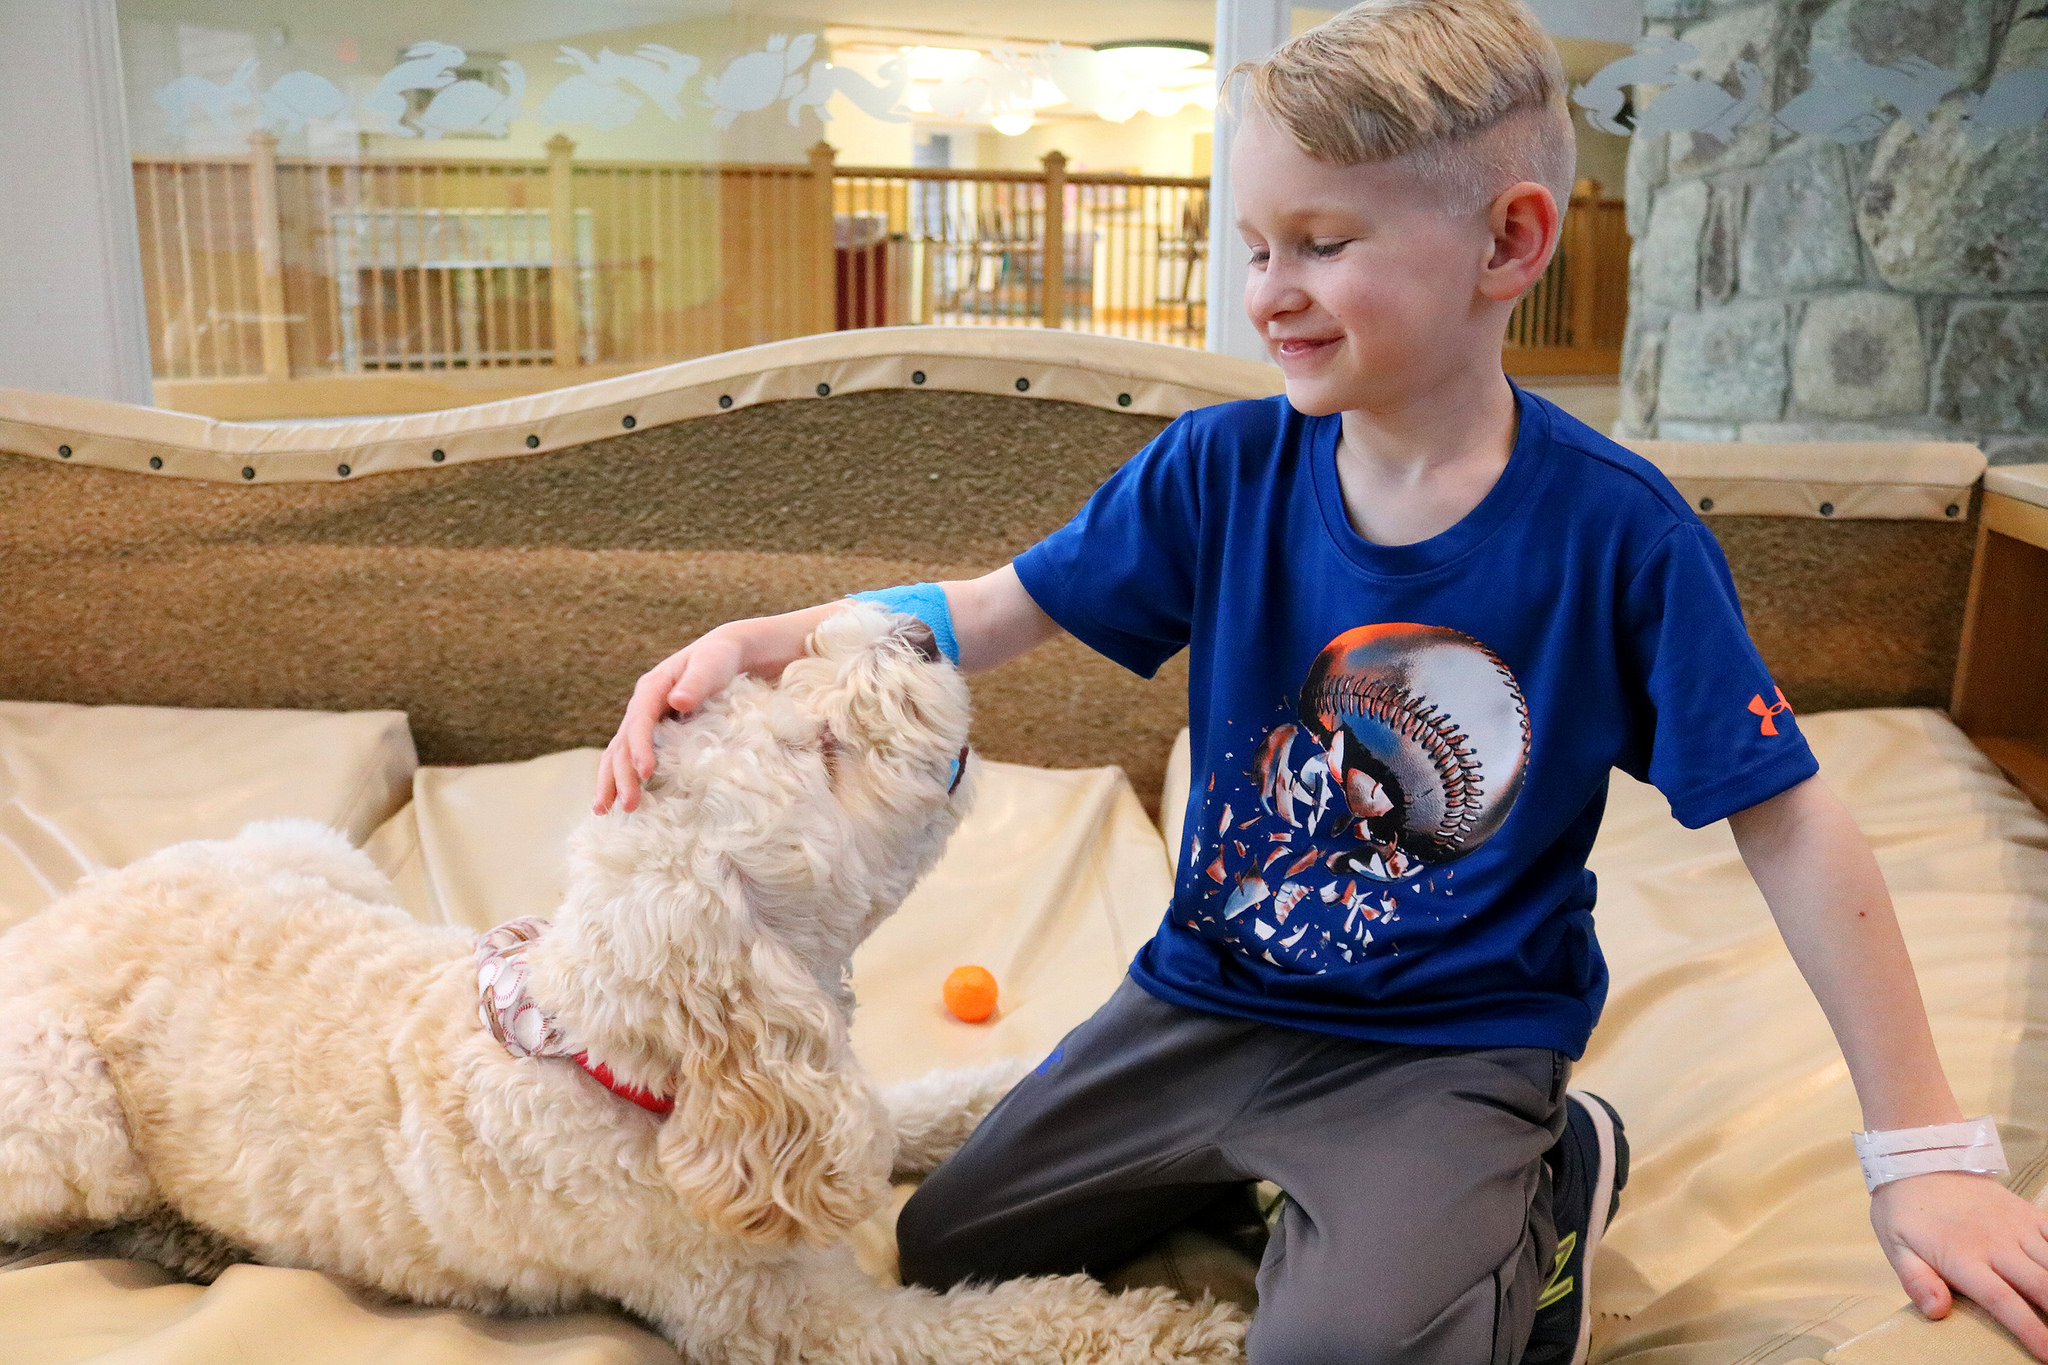 Abram a young boy and Zilly the therapy dog